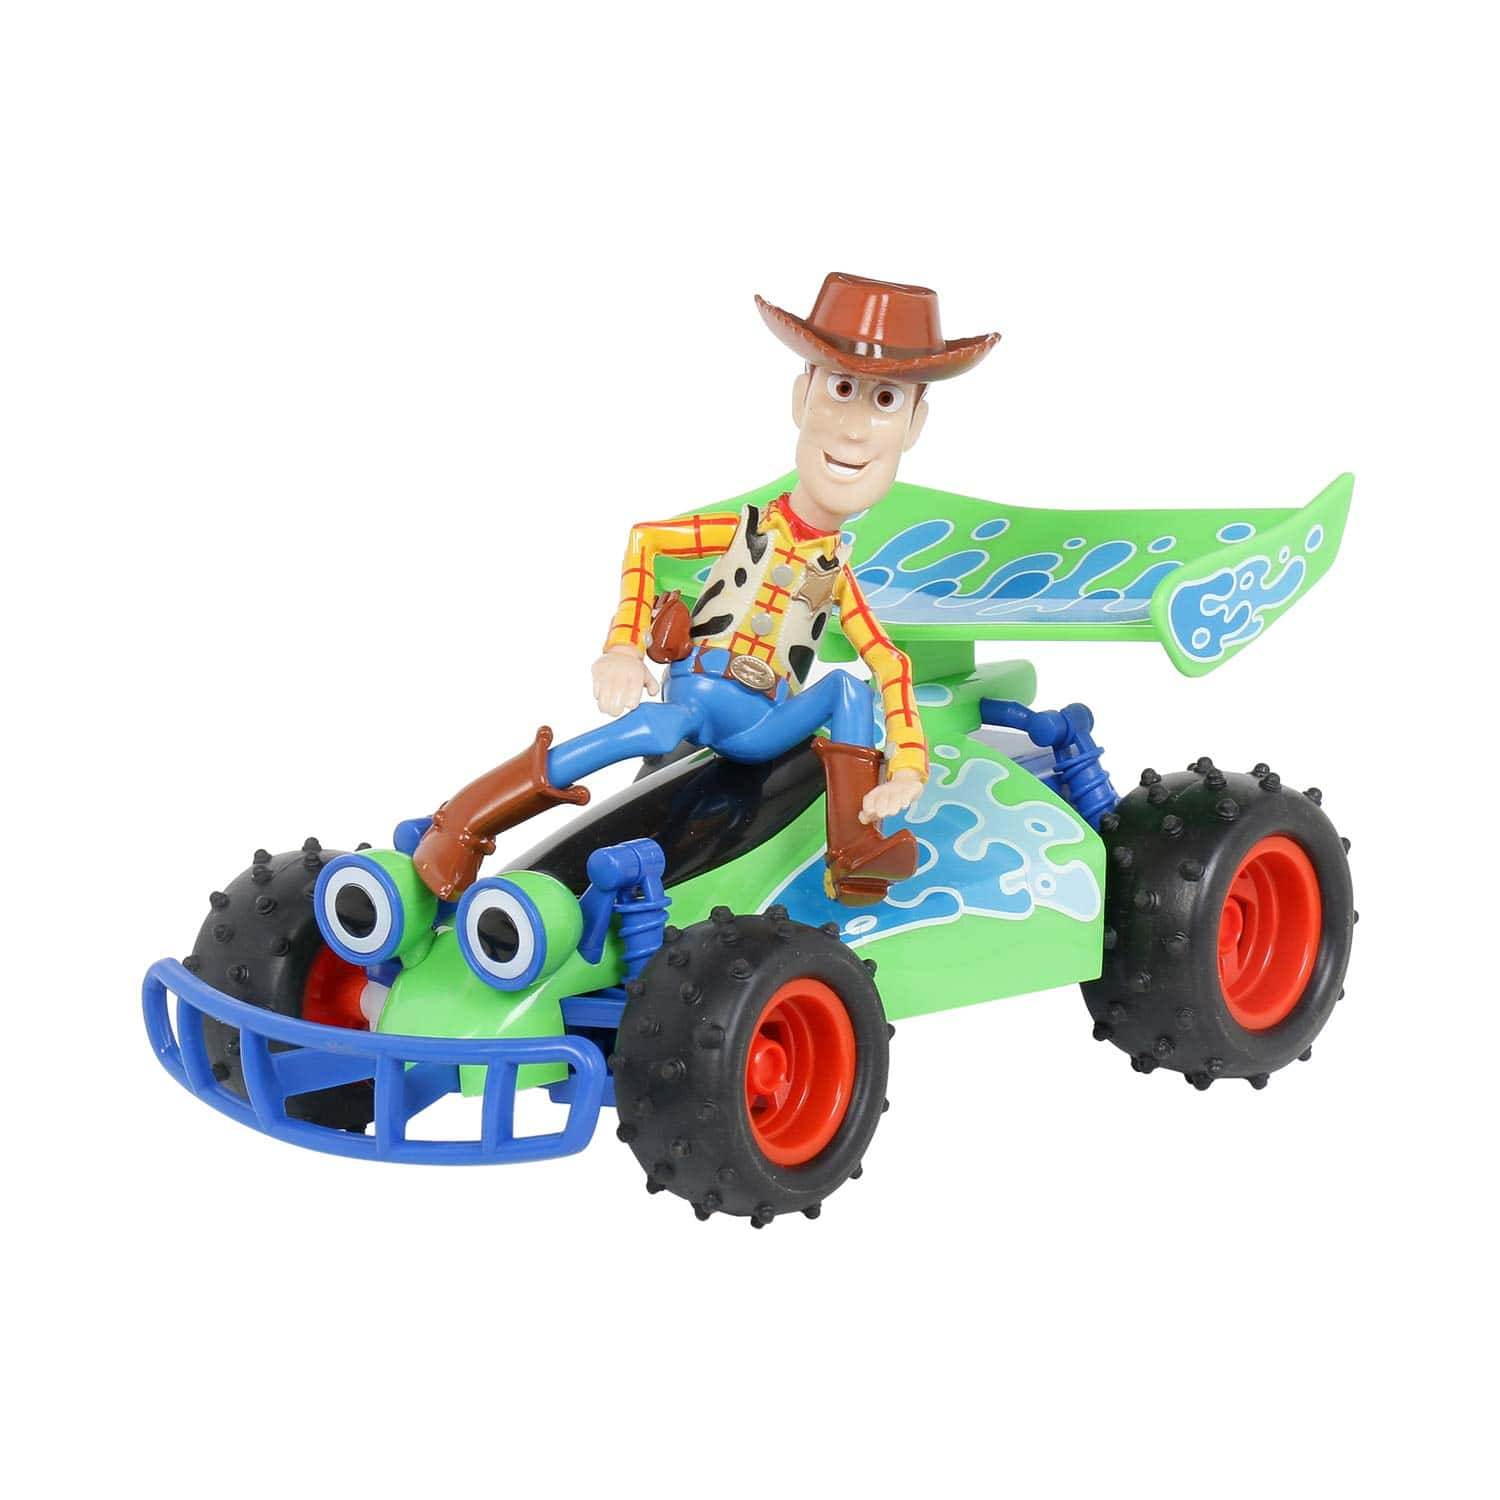 Disney Pixar 'Toy Story 4' RC Buggy With Woody.